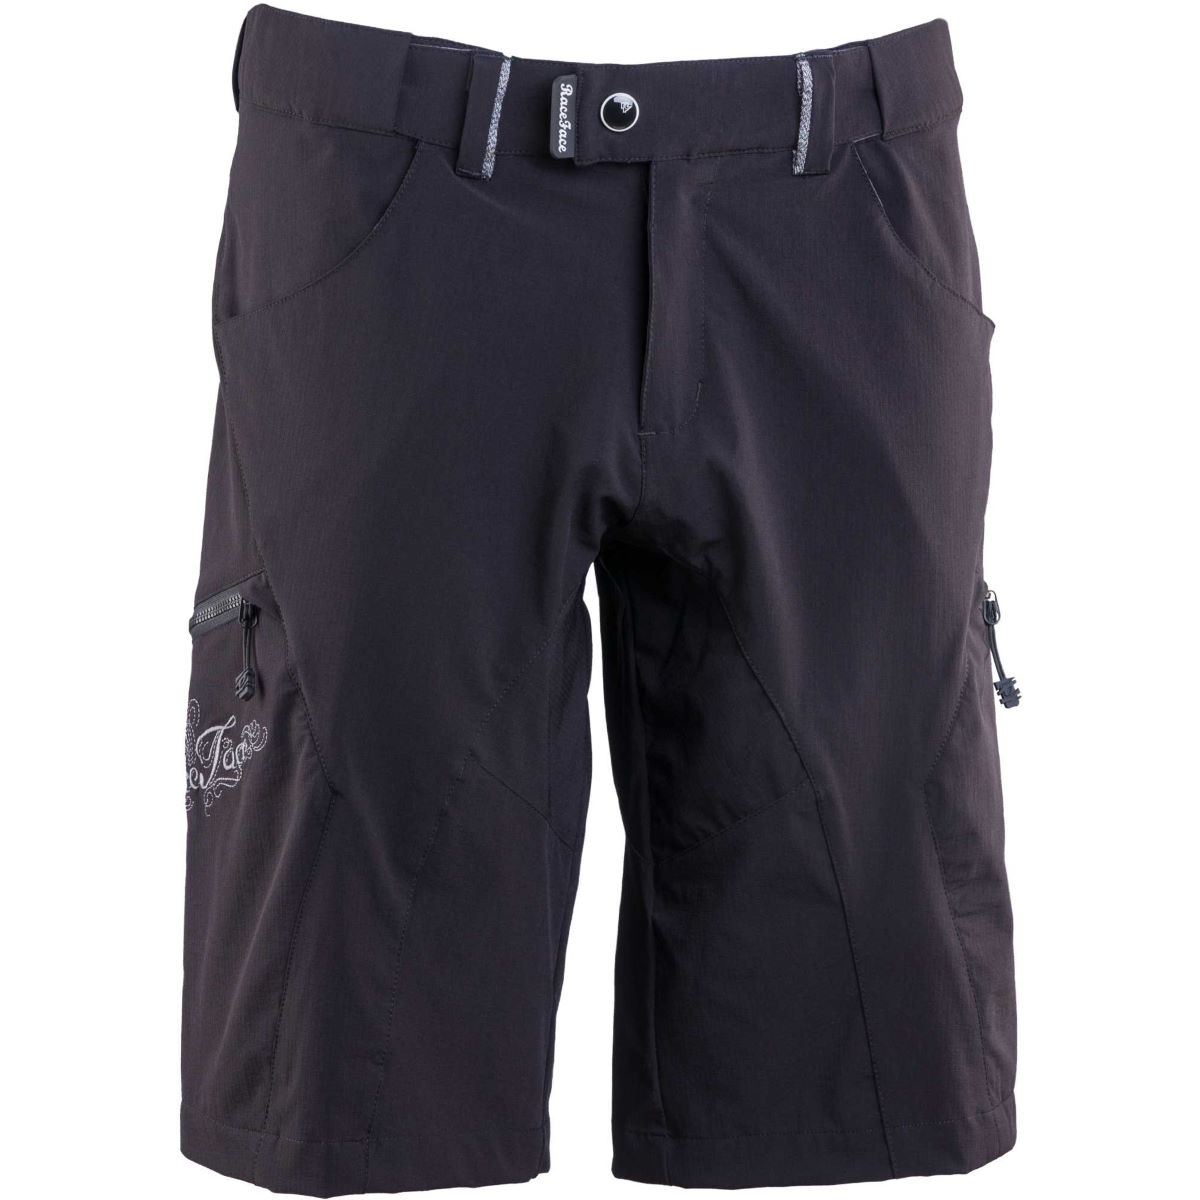 Short Femme Race Face Piper - XL Gravel Shorts VTT